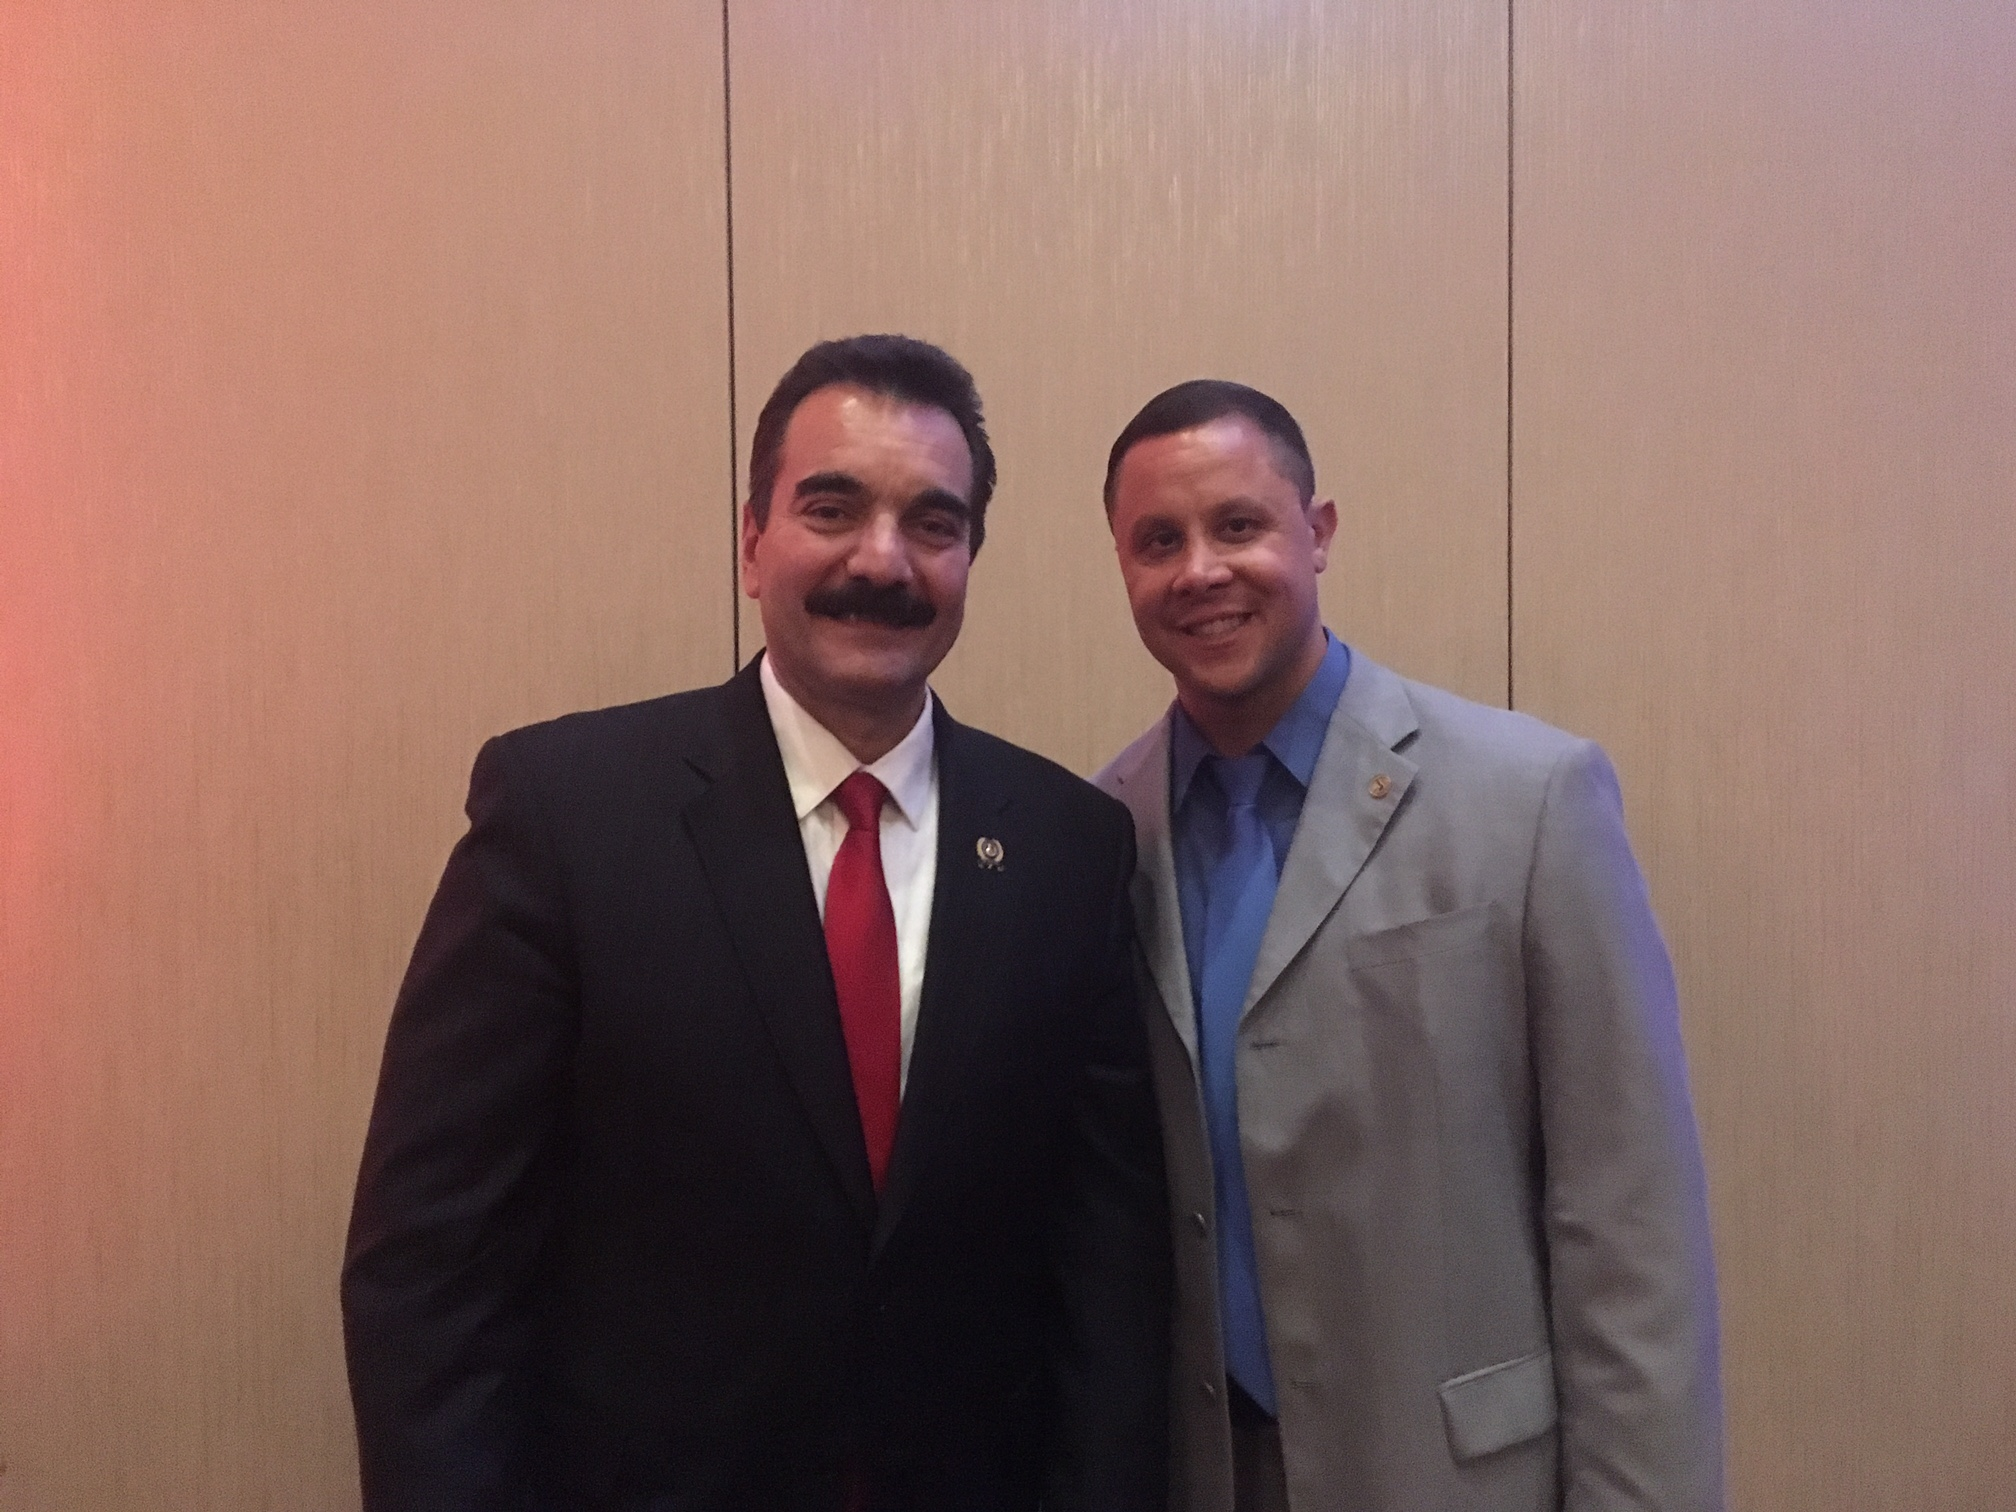 Prieto was honored during an event at Harrah's.